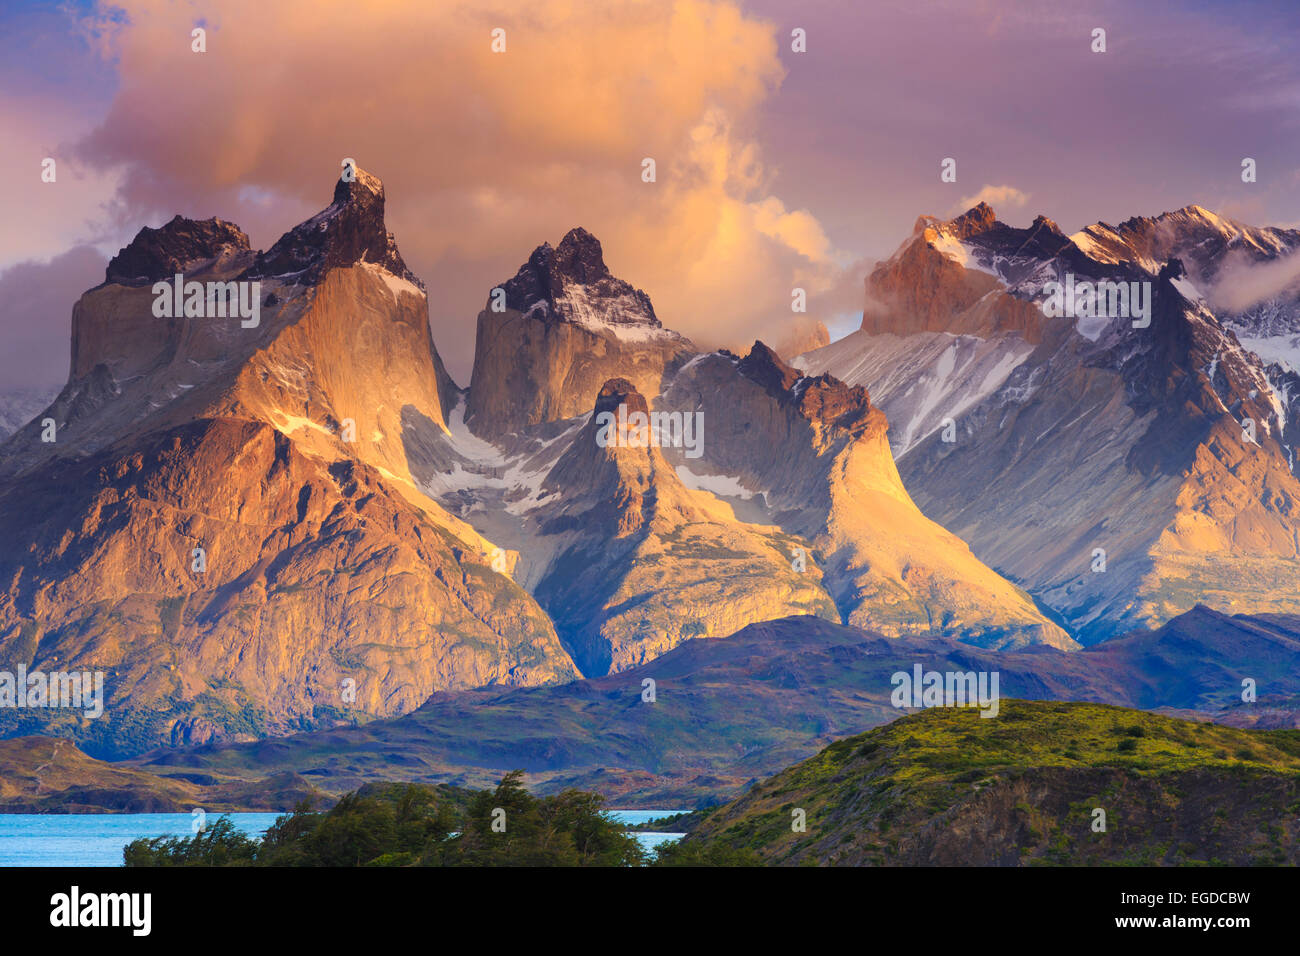 Chile, Patagonien, Torres del Paine Nationalpark (UNESCO-Website), See Peohe Stockbild